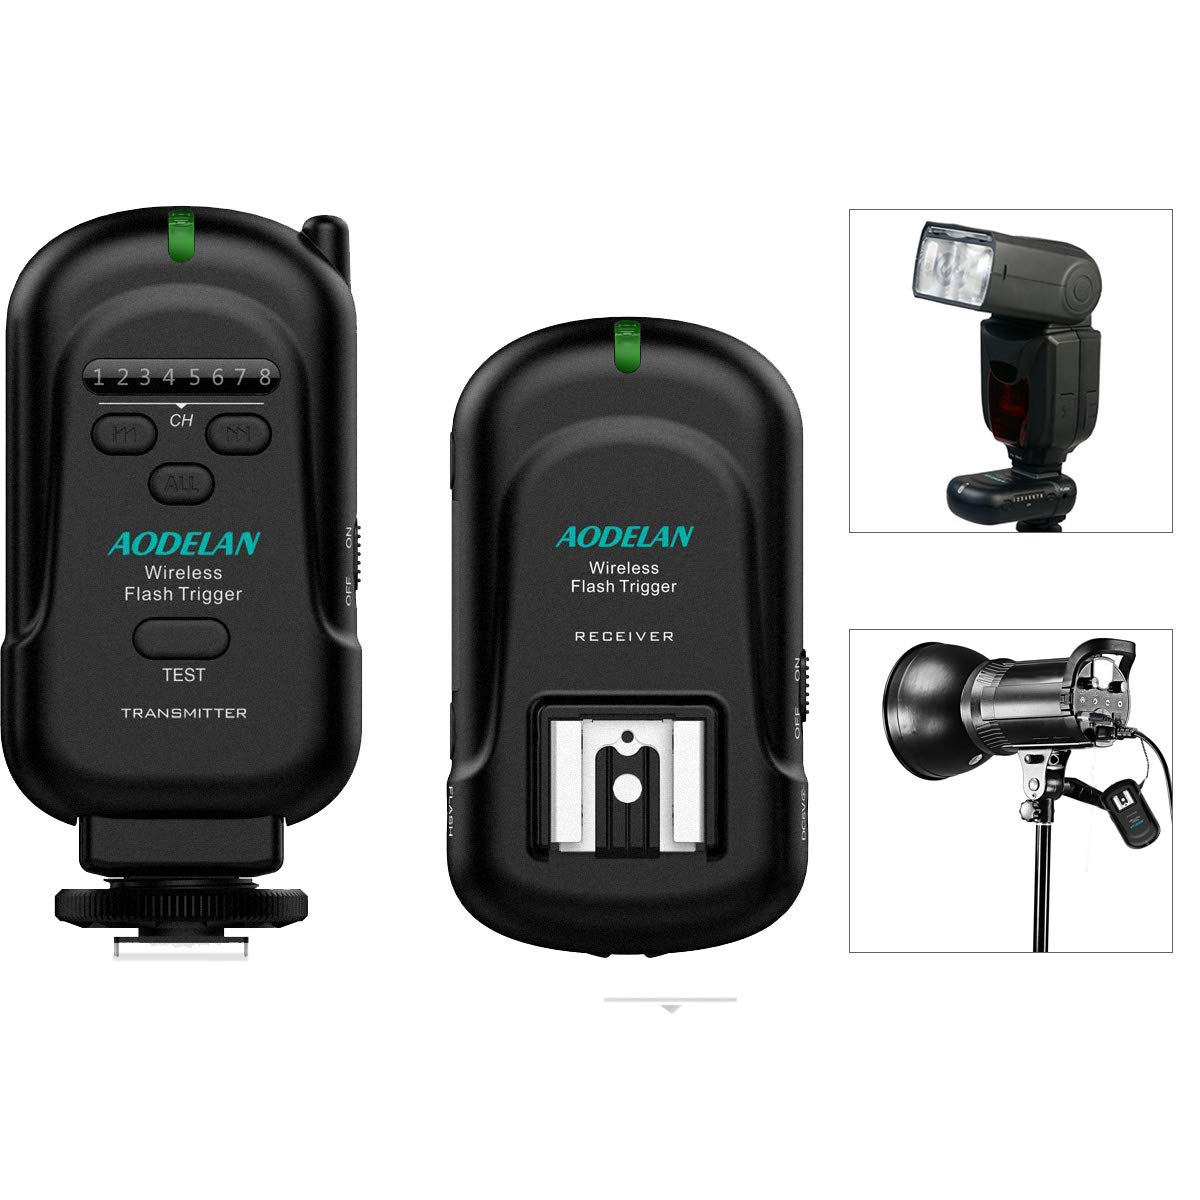 AODELAN Wireless Flash Trigger Transmitter and Receiver 2.4 GHz Frequency for Canon, Nikon, Olympus, Panasonic, Pentax, Fuji, Samsung,Sony(Except Sony Flashes)